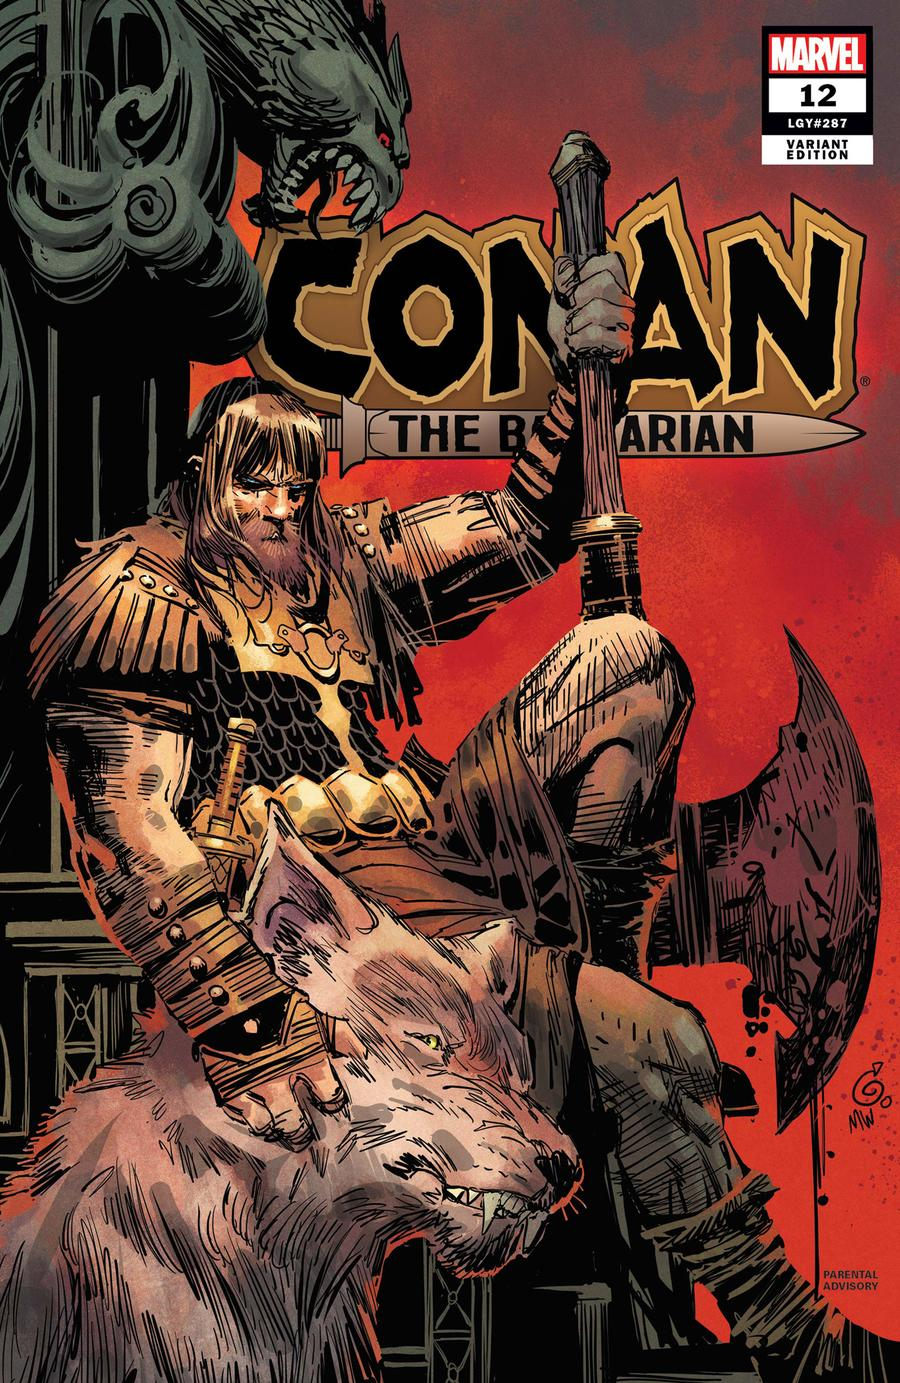 Conan The Barbarian Vol 4 #12 Cover B Incentive Ron Garney Variant Cover